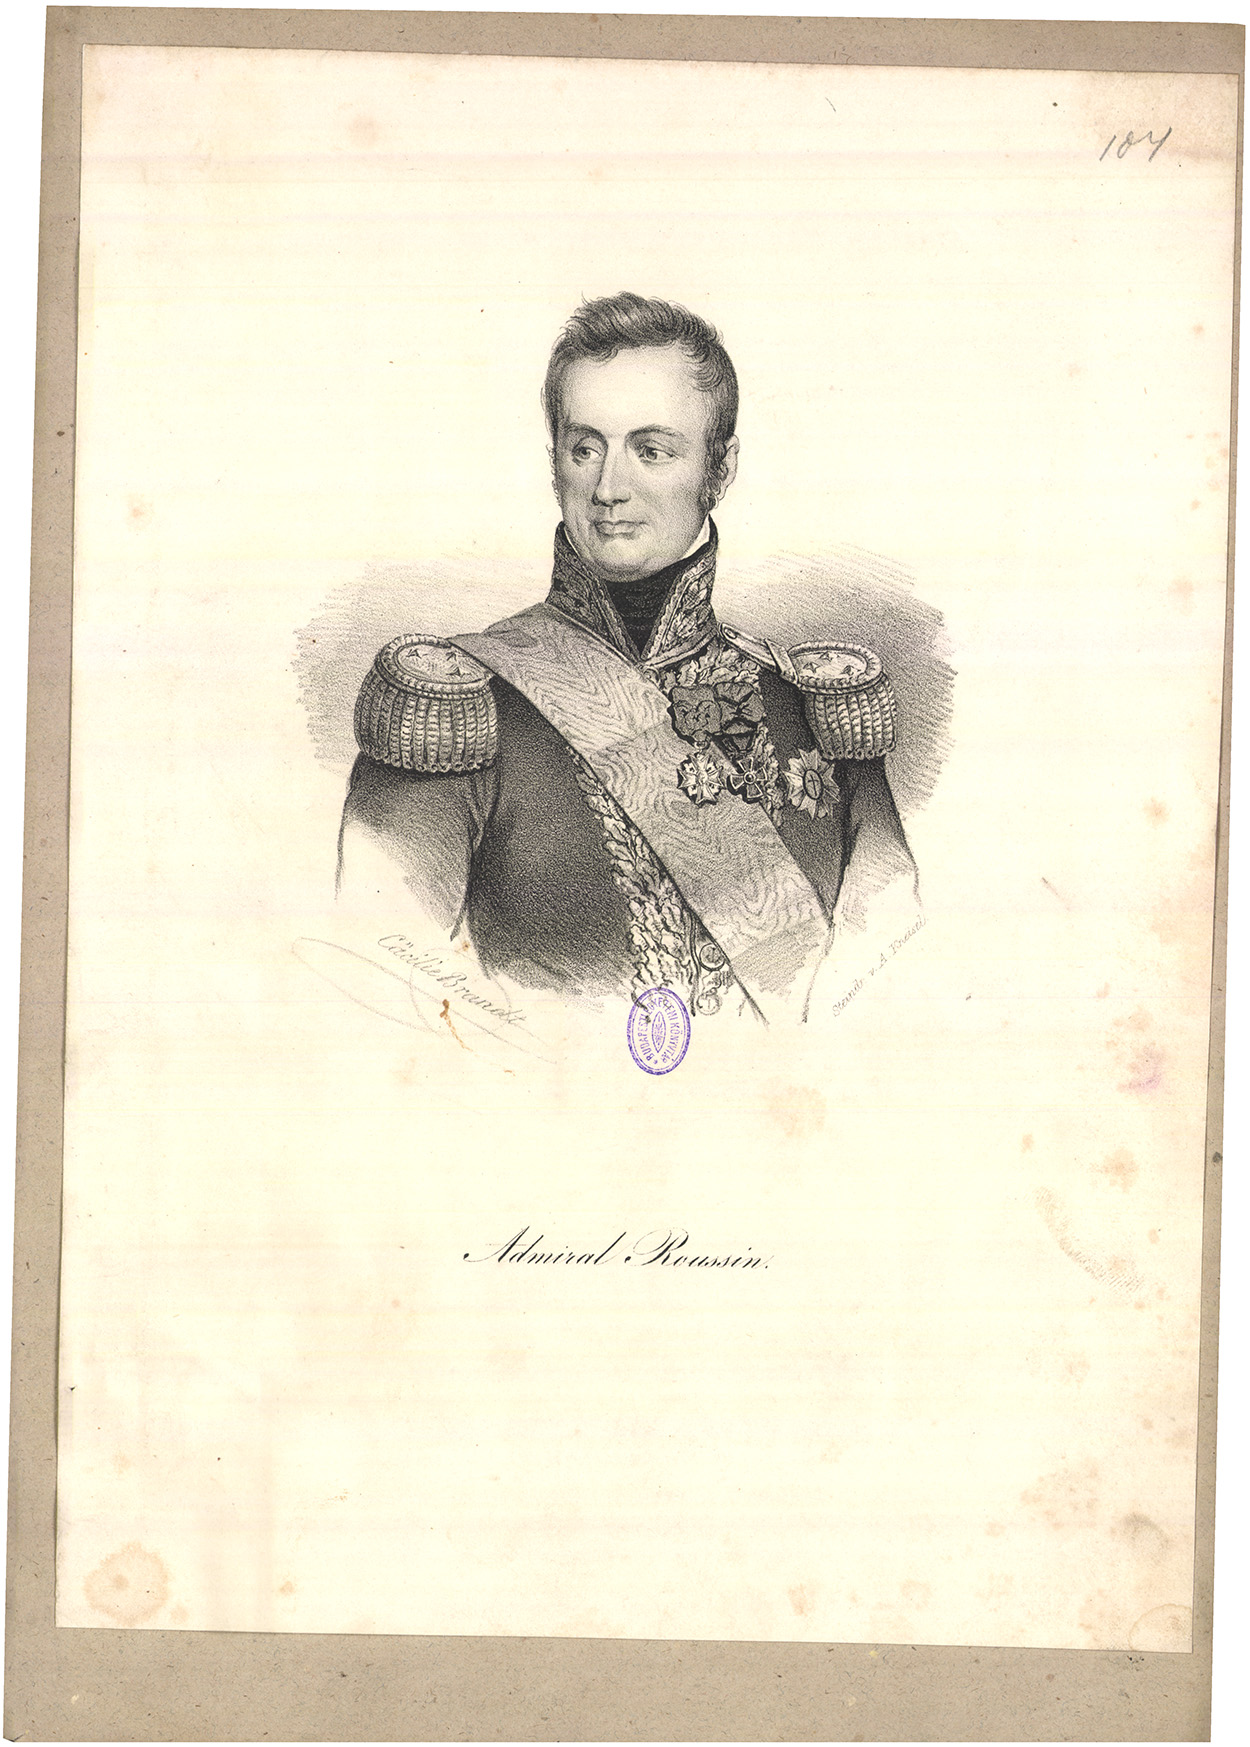 Admiral Roussin